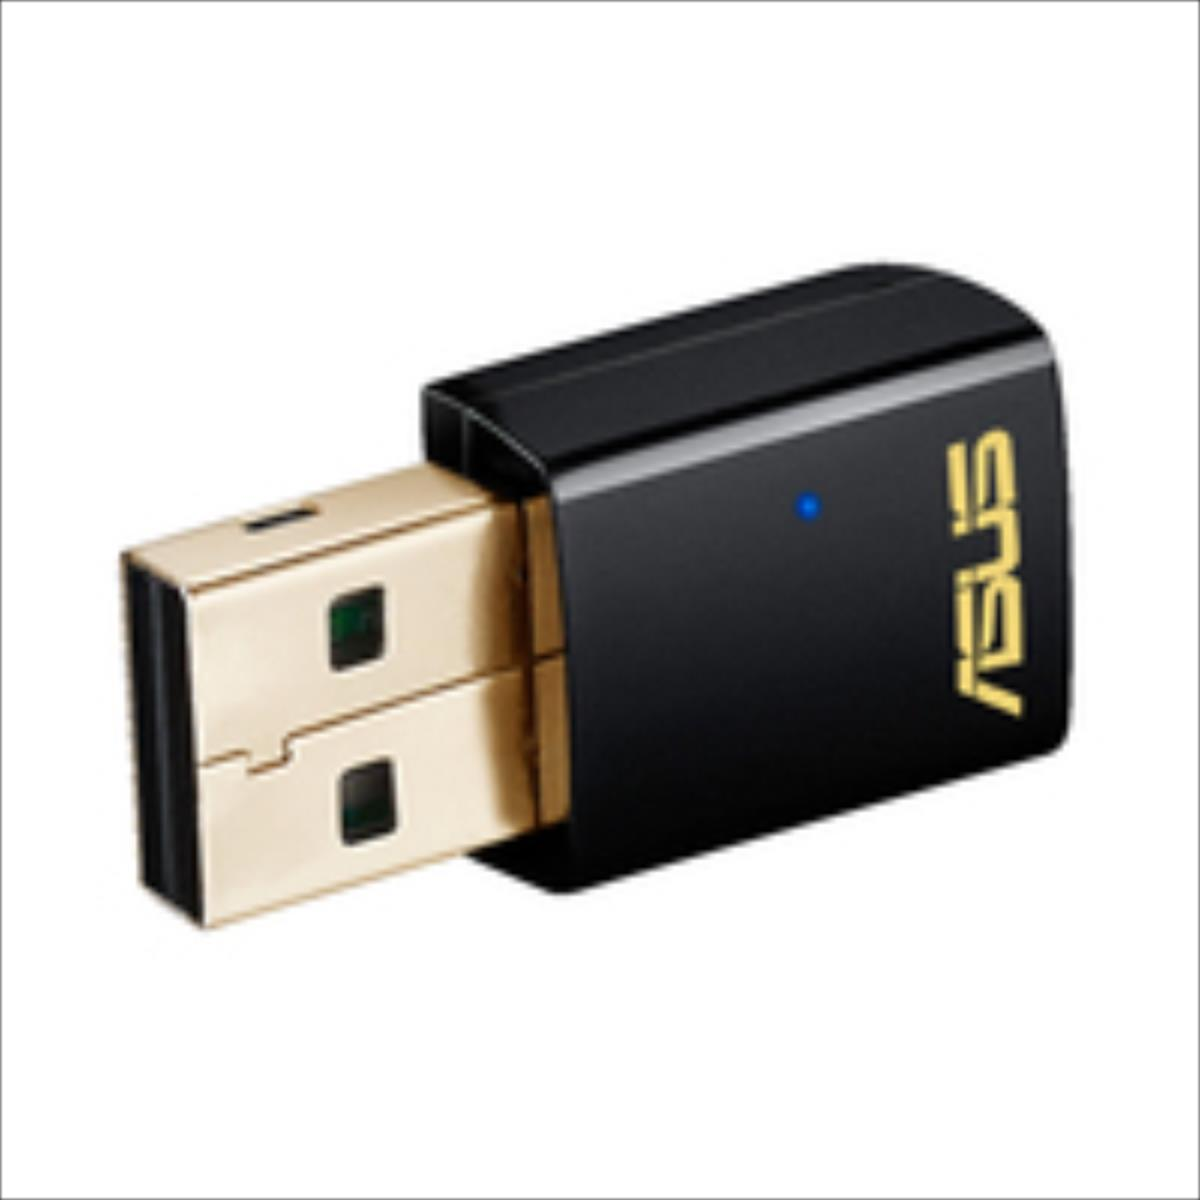 Asus AC600 Dual-band USB client card, 802.11ac, 433/150Mbps WiFi adapteris